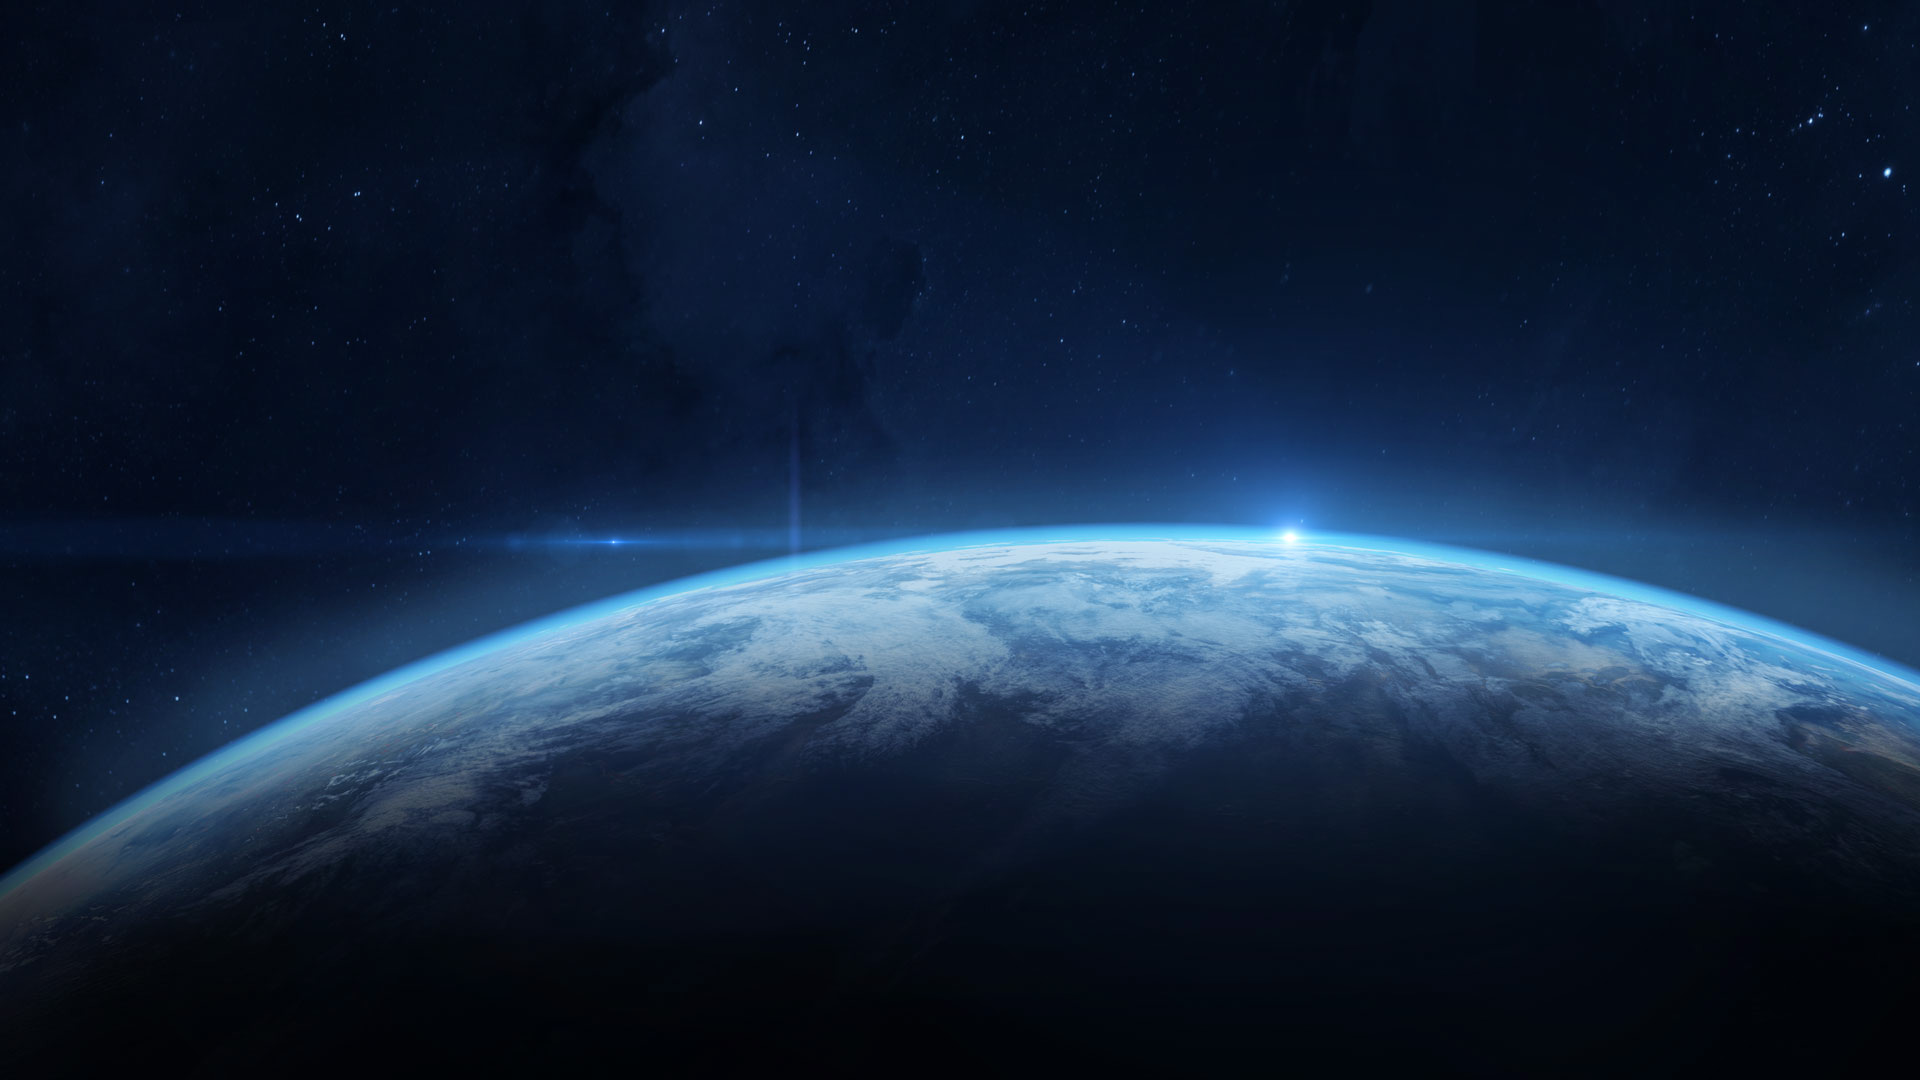 mass effect 3 wallpaper 1600x900